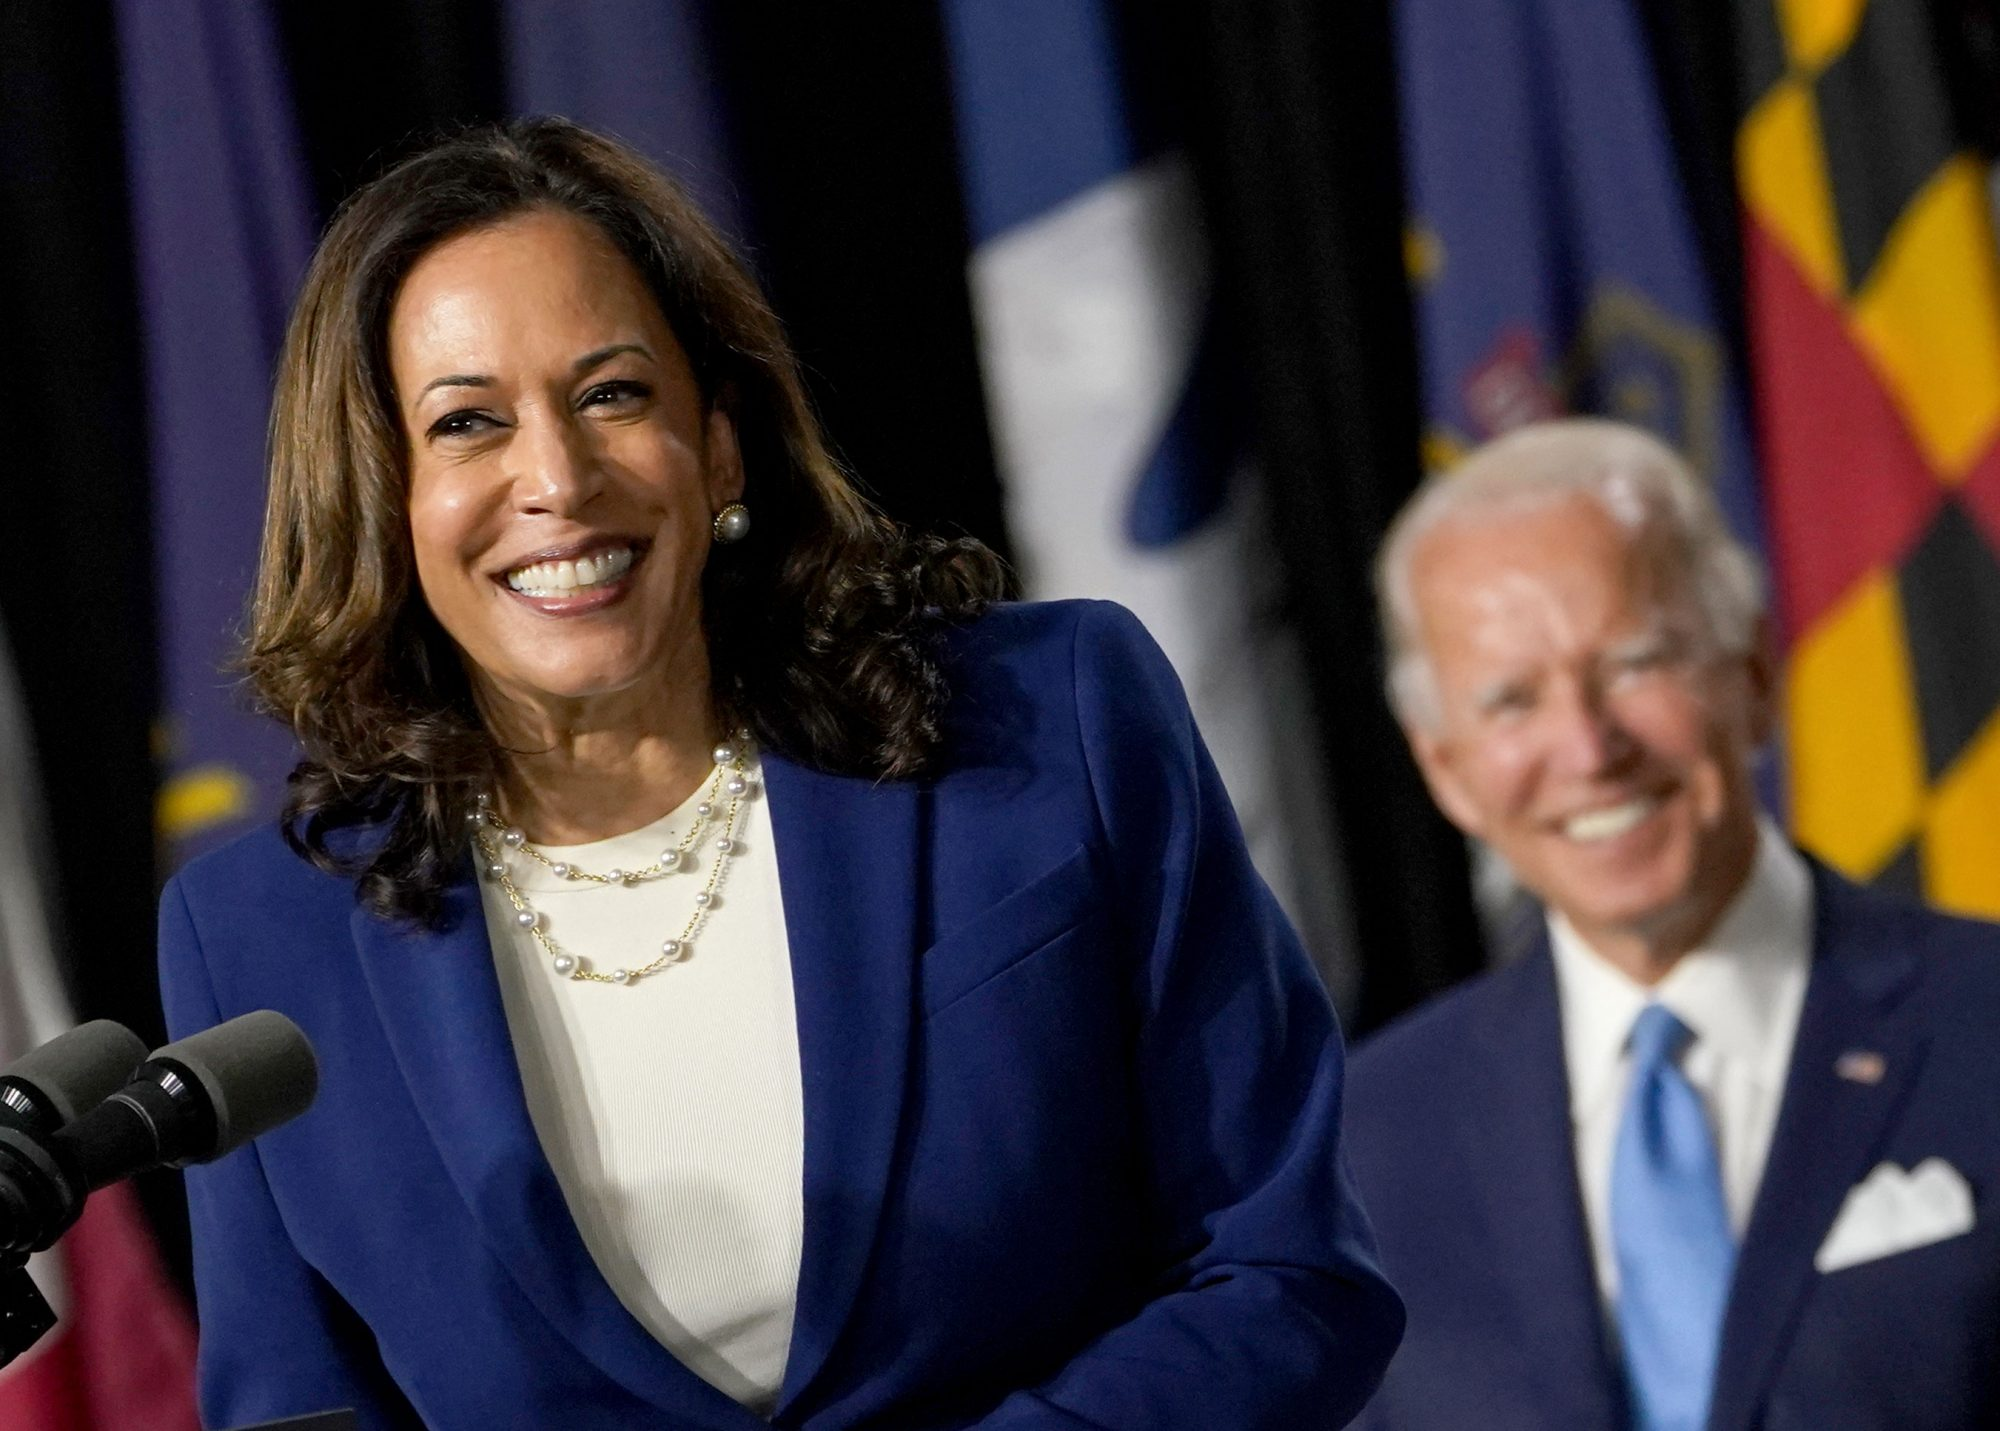 A Day in the Life of Four Senior Biden/Harris Campaign Staffers